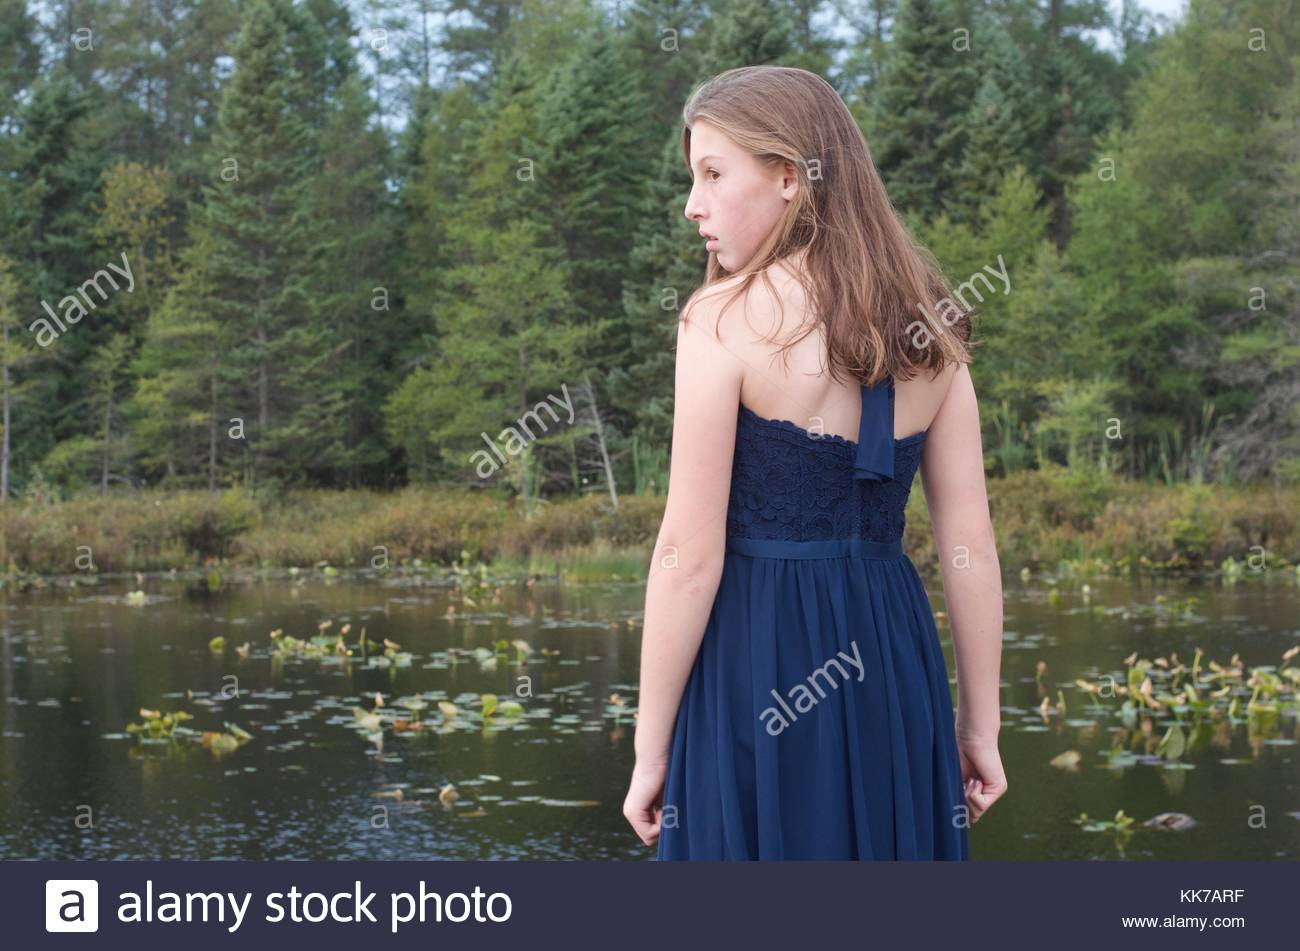 The contemplations of life in the eyes of a child - Stock Image